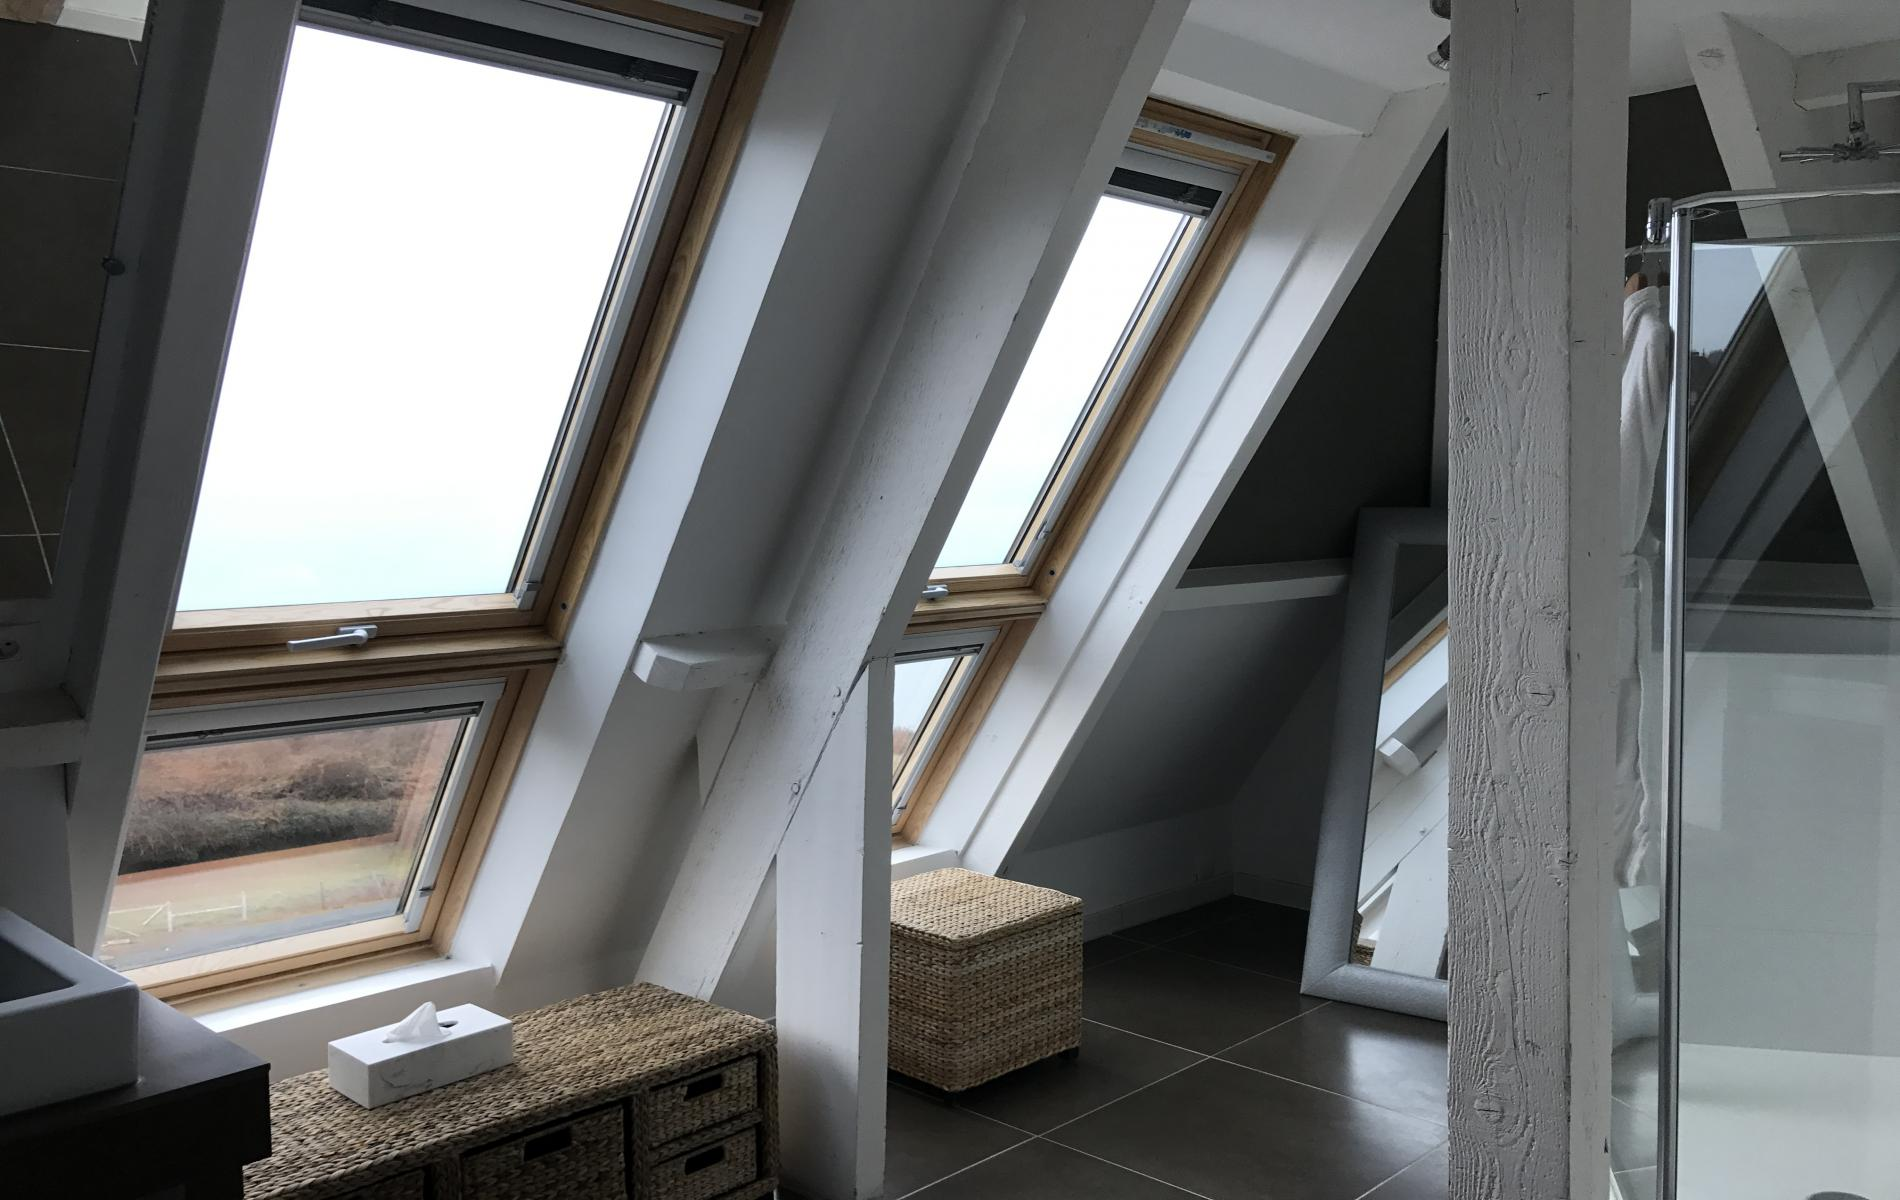 ∞ Bed and Breakfast Honfleur Annie s rooms with sea view in Honfleur